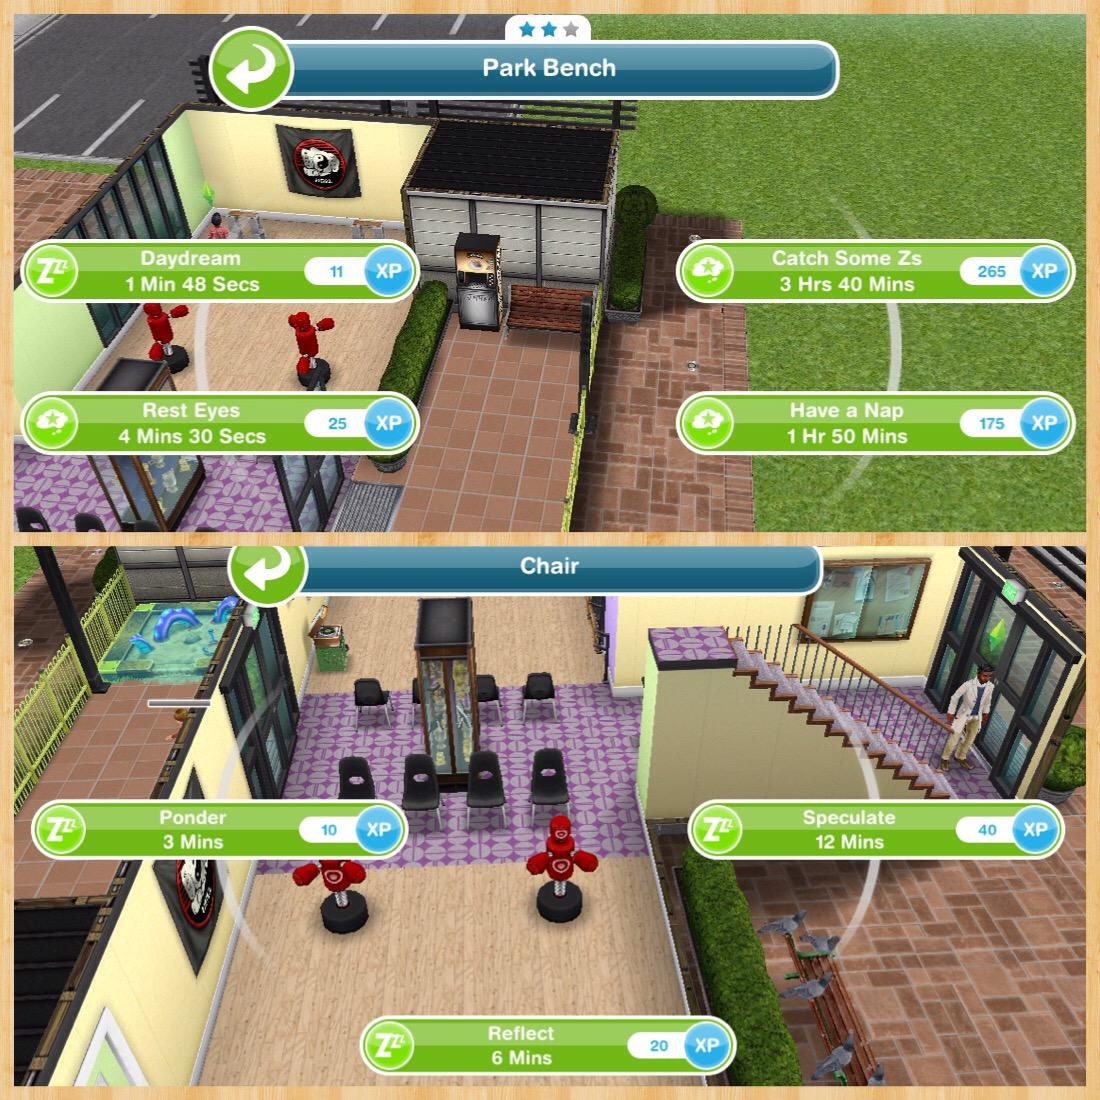 The Sims Freeplay- Community Center | The Girl Who Games